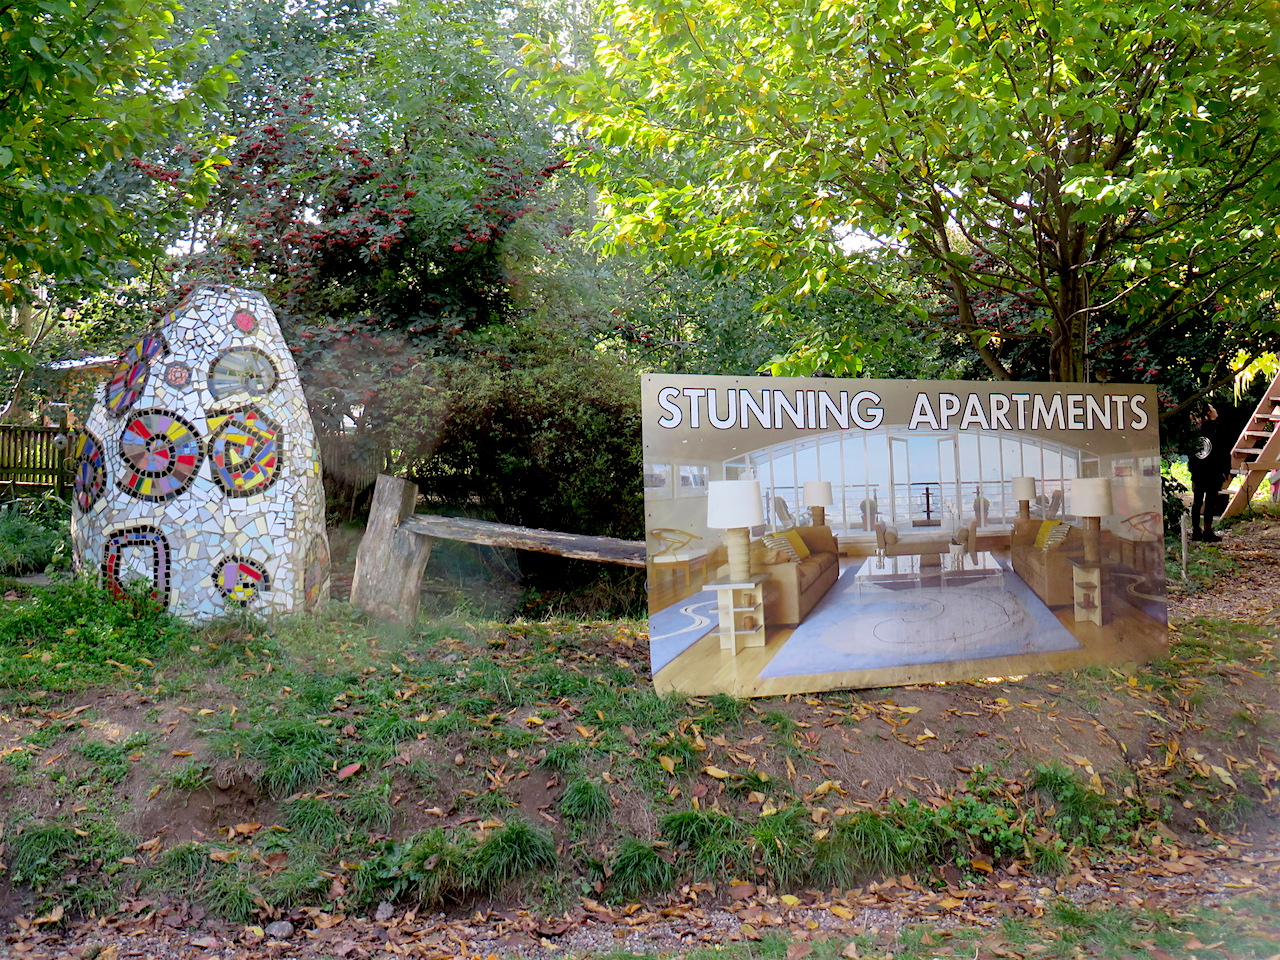 'Stunning apartments': a reclaimed sign brought to the Old Tidemill Wildlife Garden prior to its violent eviction on October 29, 2018 (Photo: Andy Worthington).